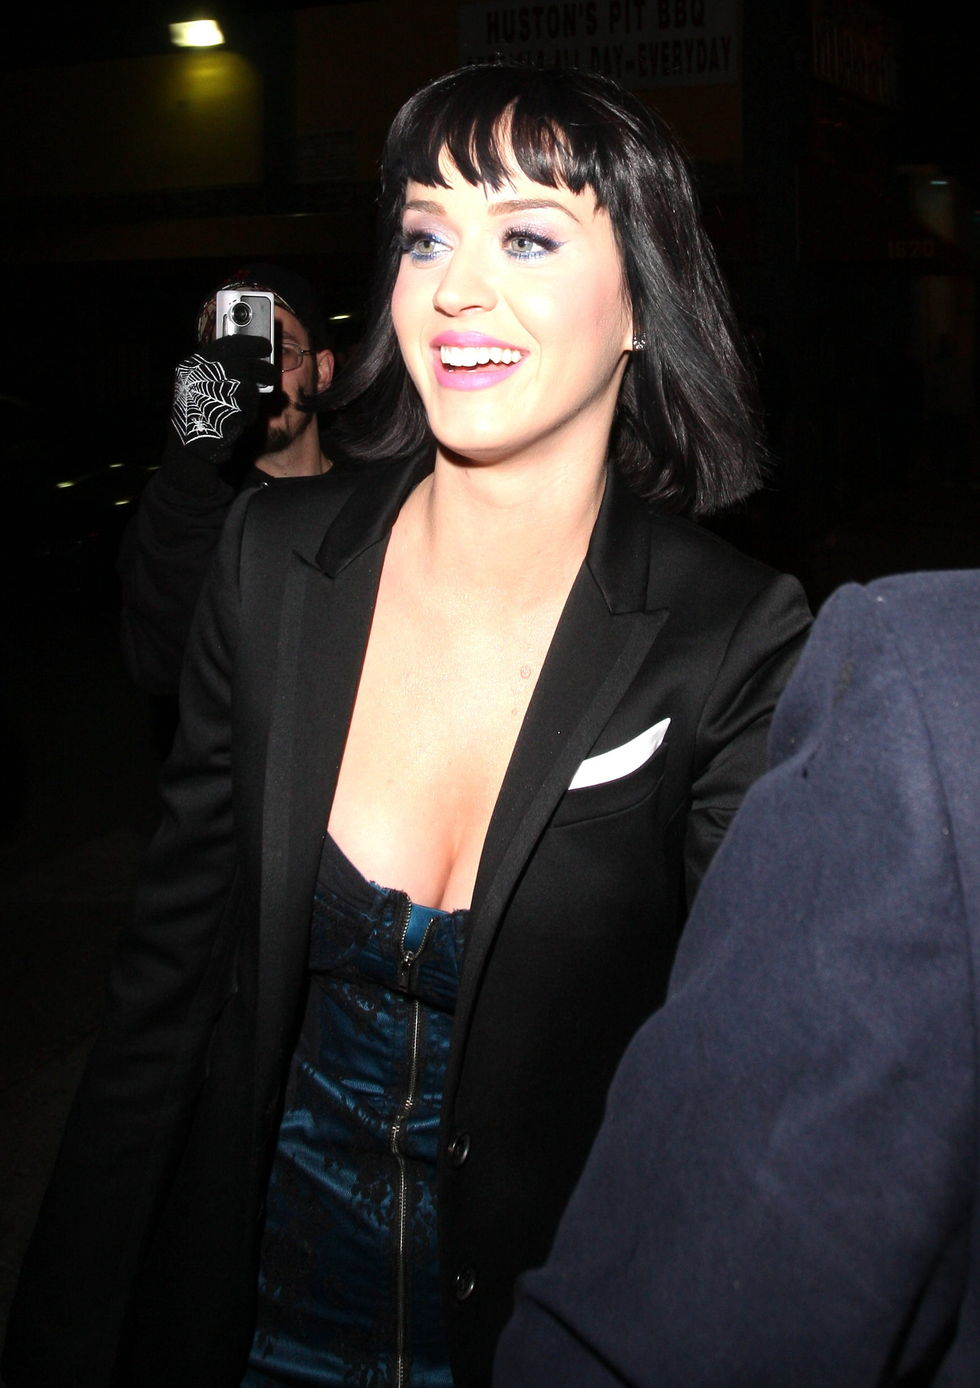 katy-perry-cleavage-candids-at-bar-deluxe-nightclub-in-los-angeles-01